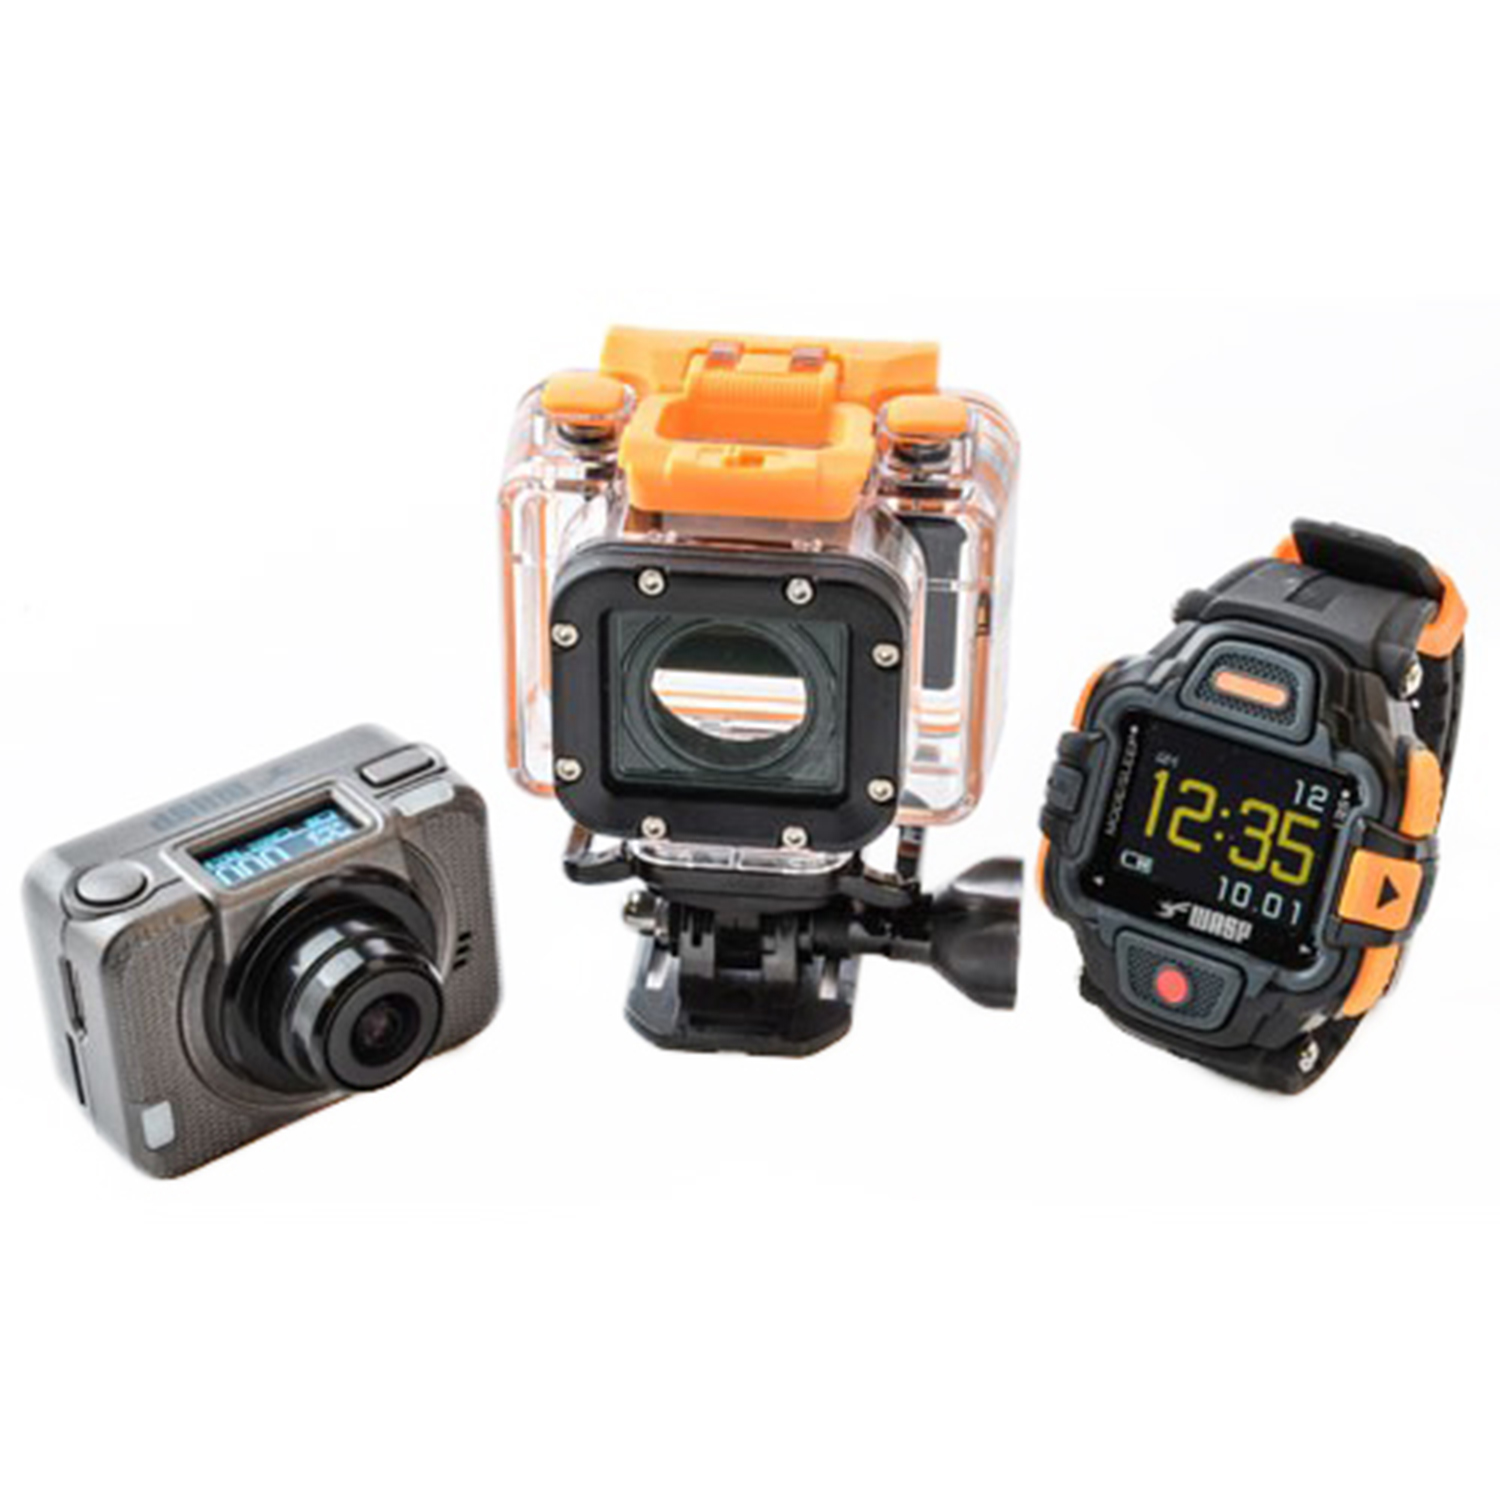 WASP 9902 GIDEON:Trail and underwater viewing system   The WASP 9902 Gideon records high-def video at 1080p60, 1080p30, 960p60, and 720p120, and has an auto-looping function so that video records over itself—perfect for continuous video recording. The camera includes a wireless wrist remote, which connects to the camera up to 15 feet away, while built-in wifi connects the camera to your smartphone for live viewing, remote control and instant sharing online. Up to 16 megapixels. Camera (when installed in waterproof casing) and remote are waterproof to 196 feet. Several accessories are included with this camera.  MRSP: $319    www.waspcam.com